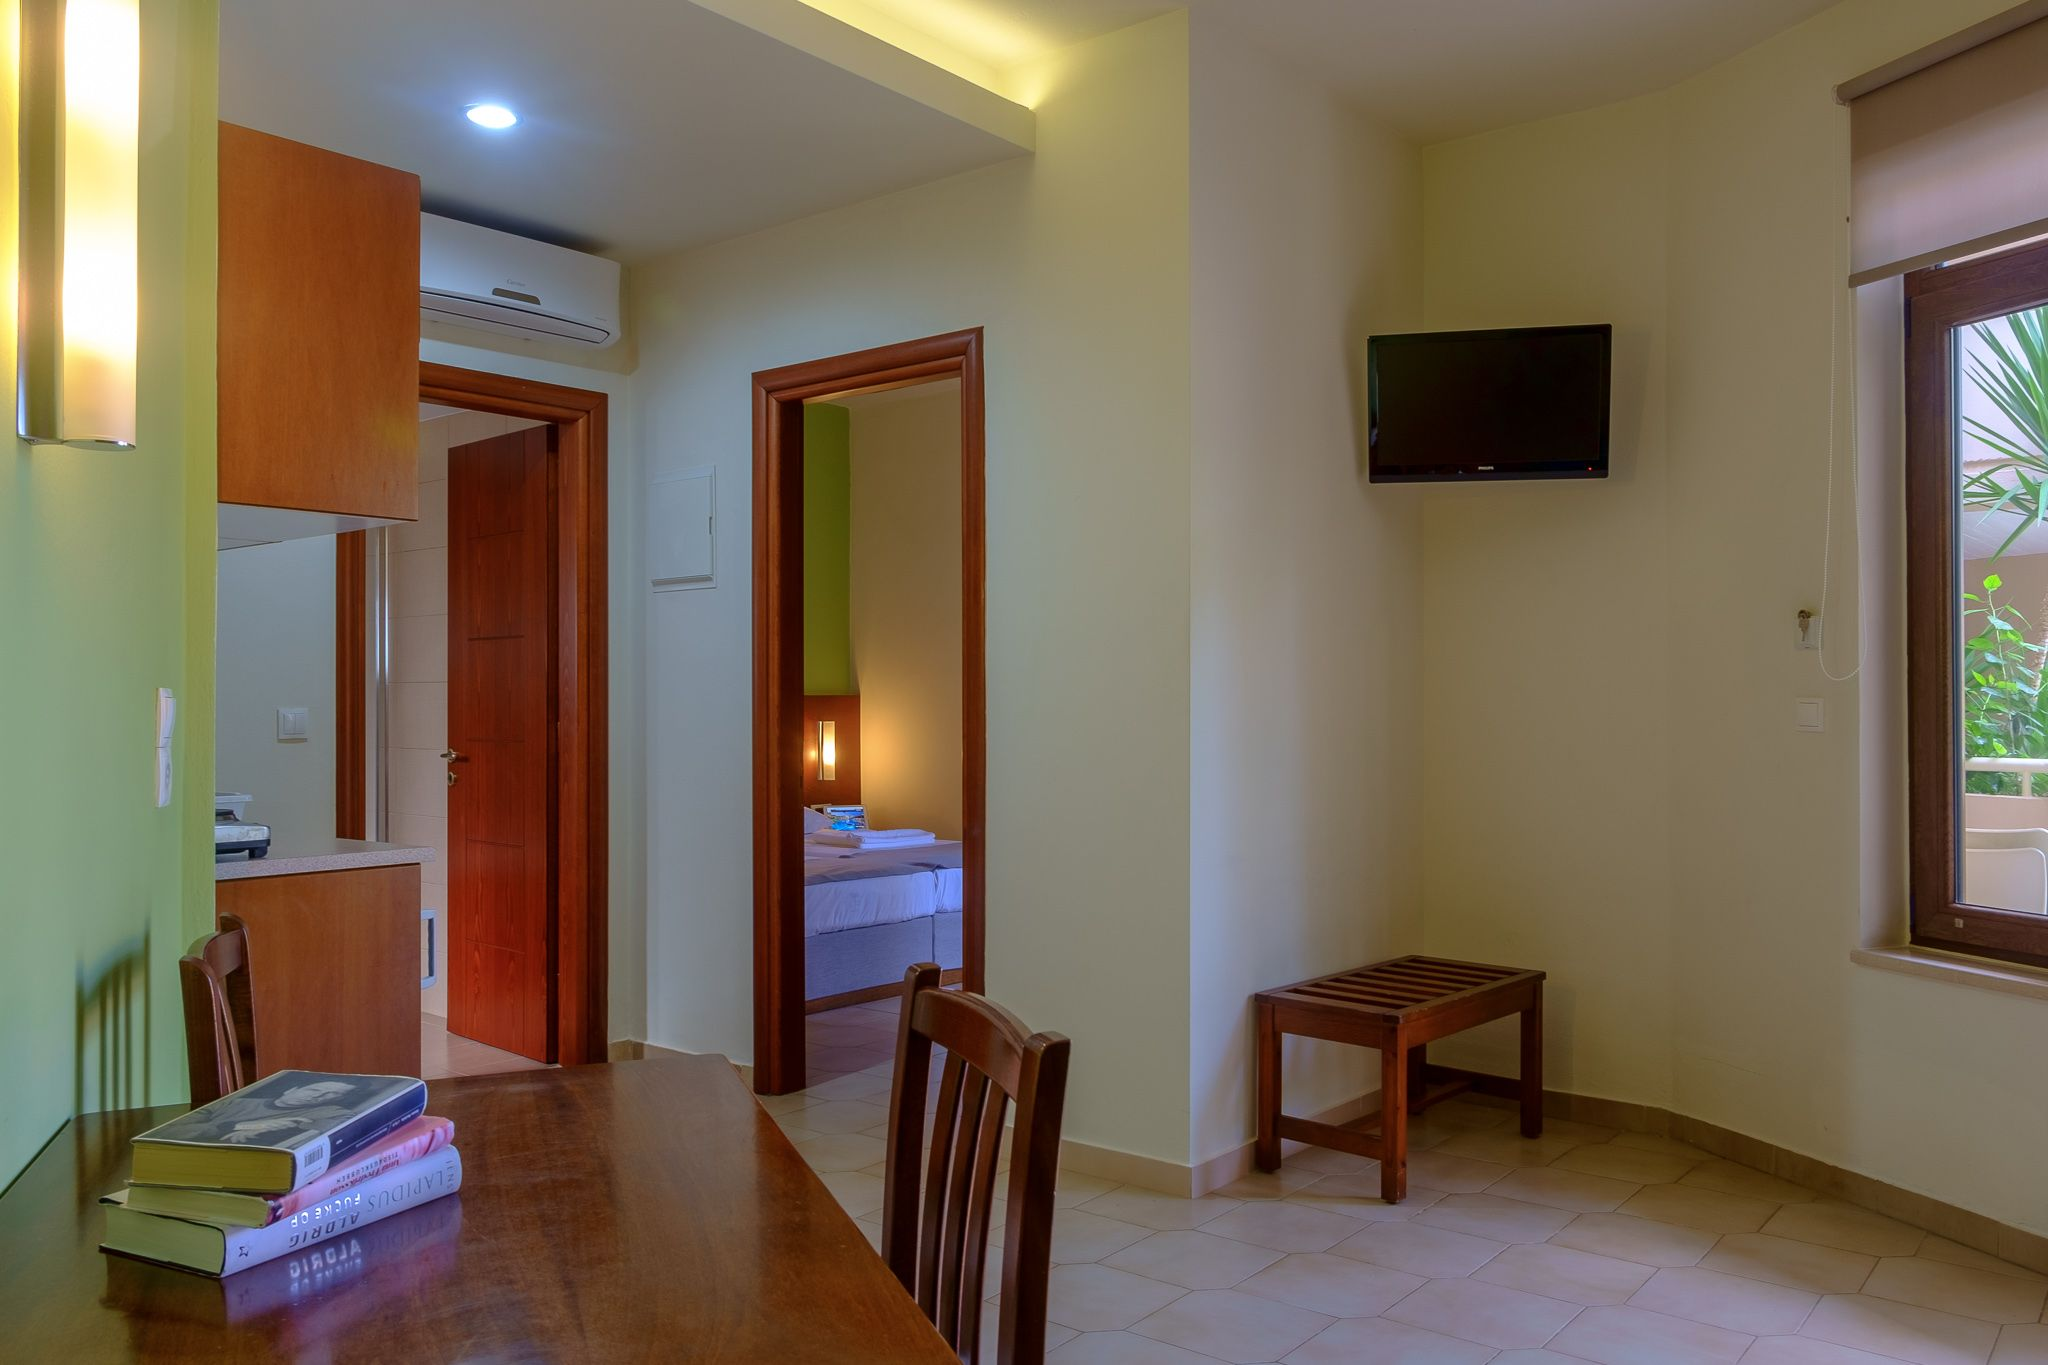 1 Bedroom Apartments in Agia Marina, Chania One bedroom